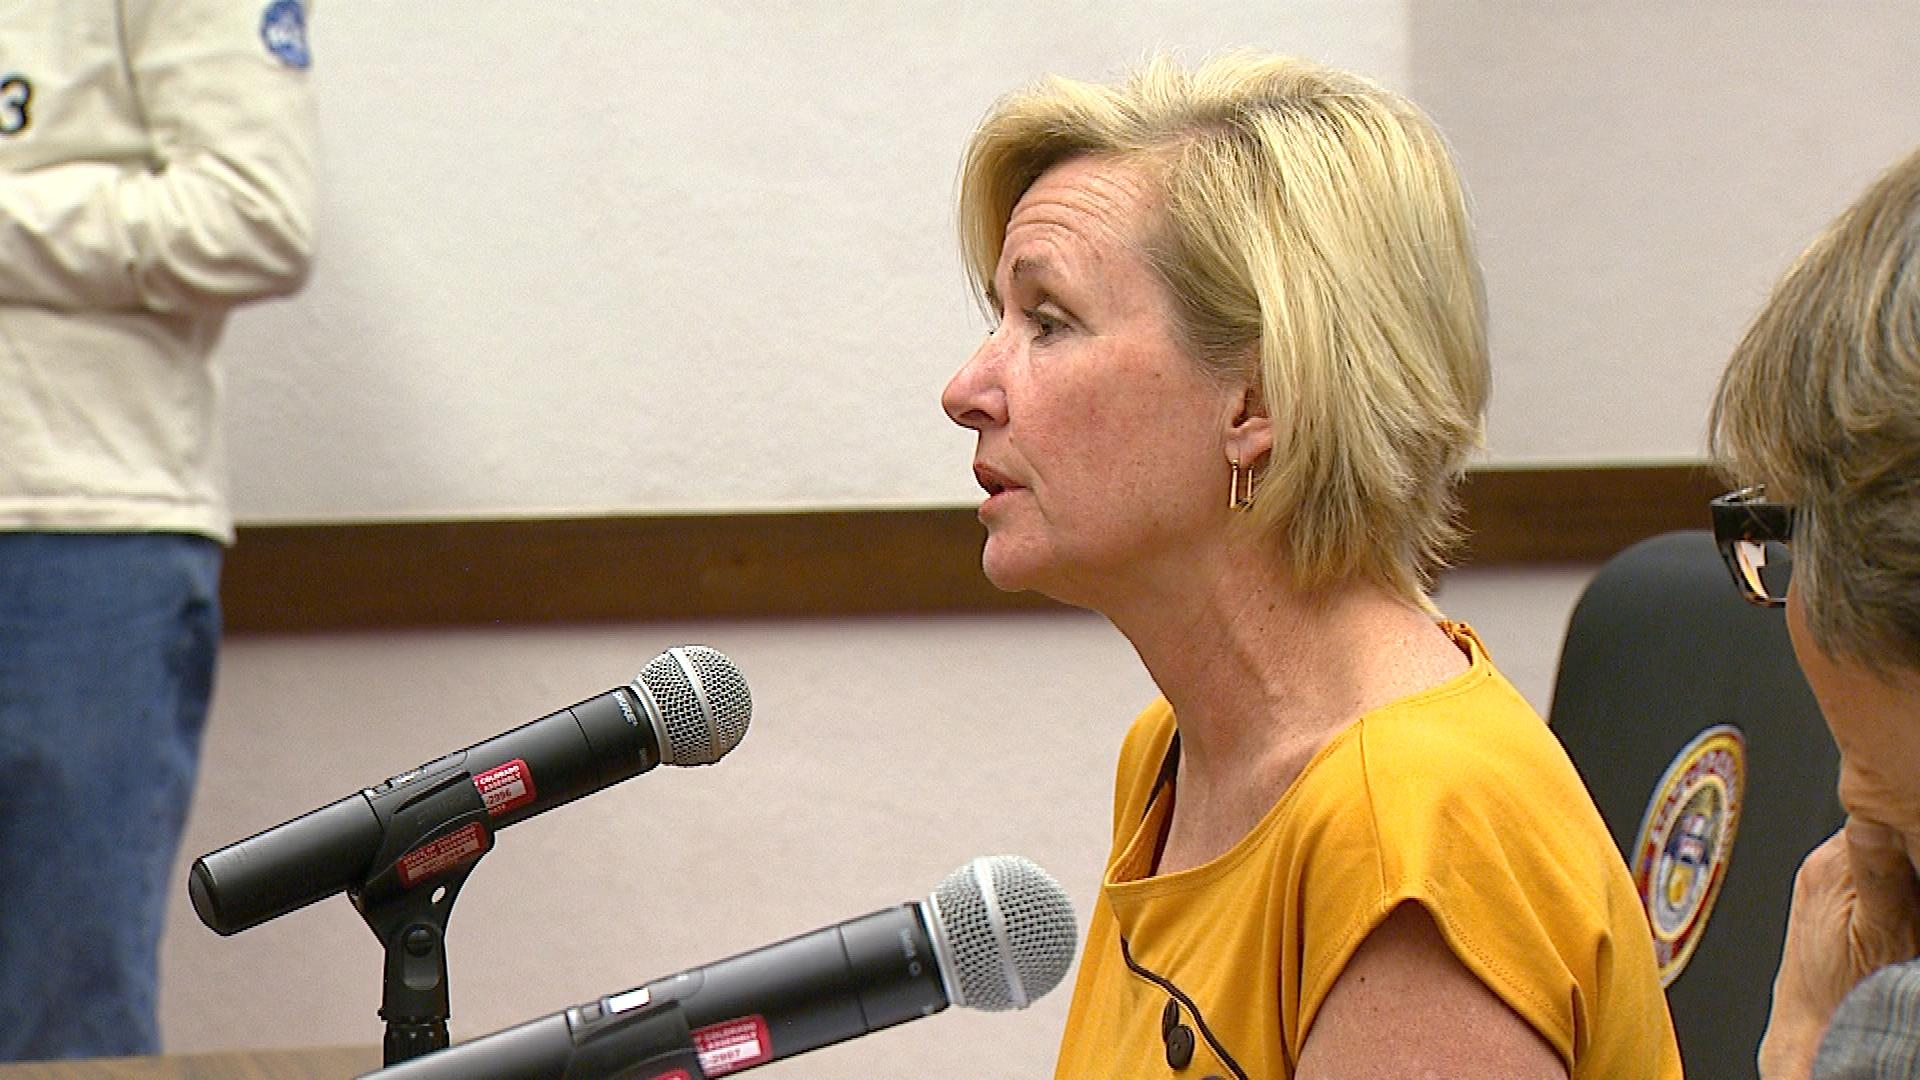 Jennifer Thompson at the Colorado Capitol on Monday (credit: CBS)